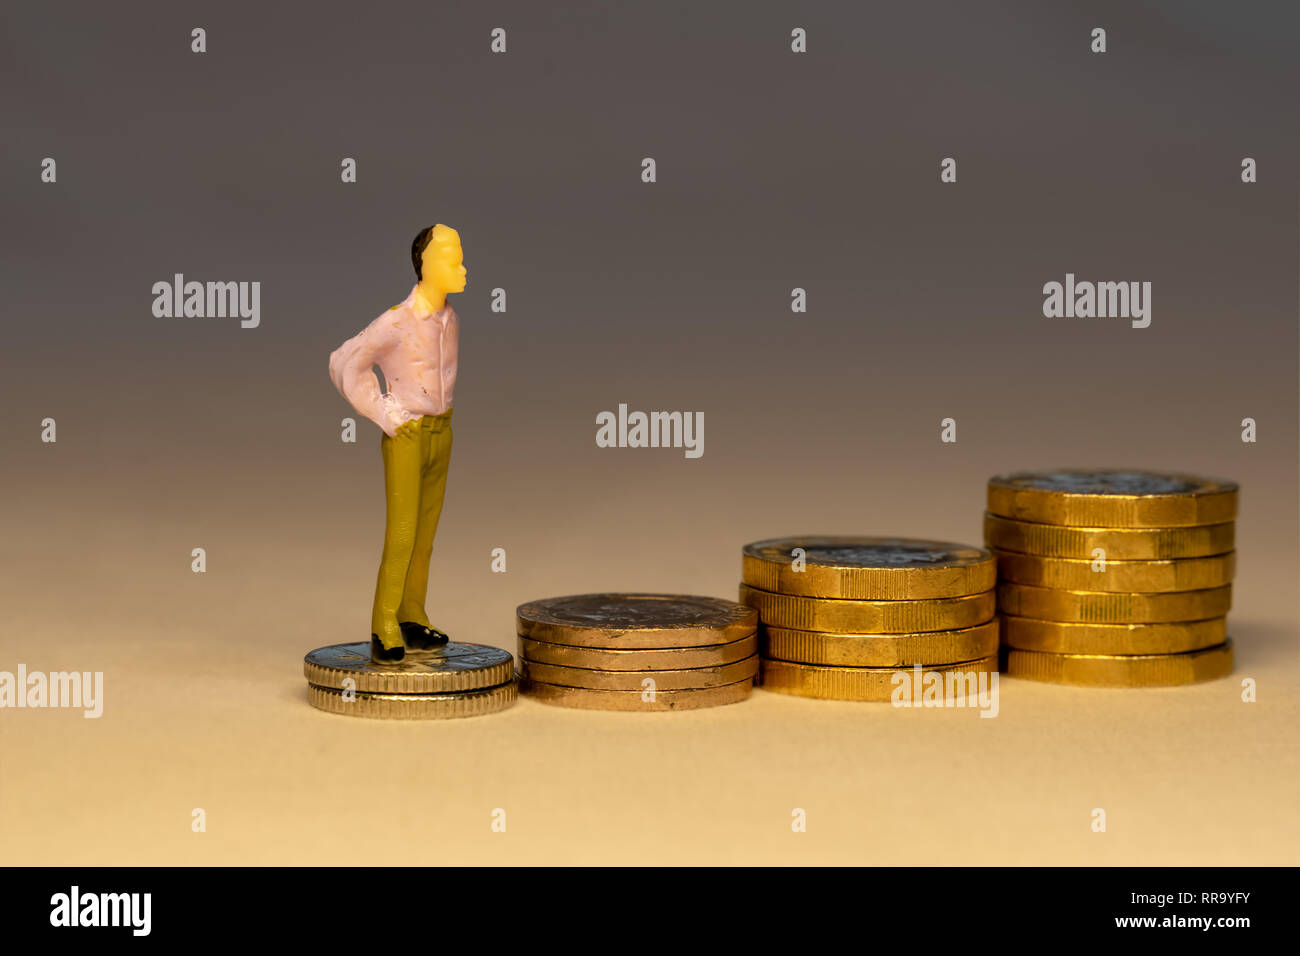 Man climbing on increasing piles of gold coins. Saving money for retirement, business career or investment concept. - Stock Image